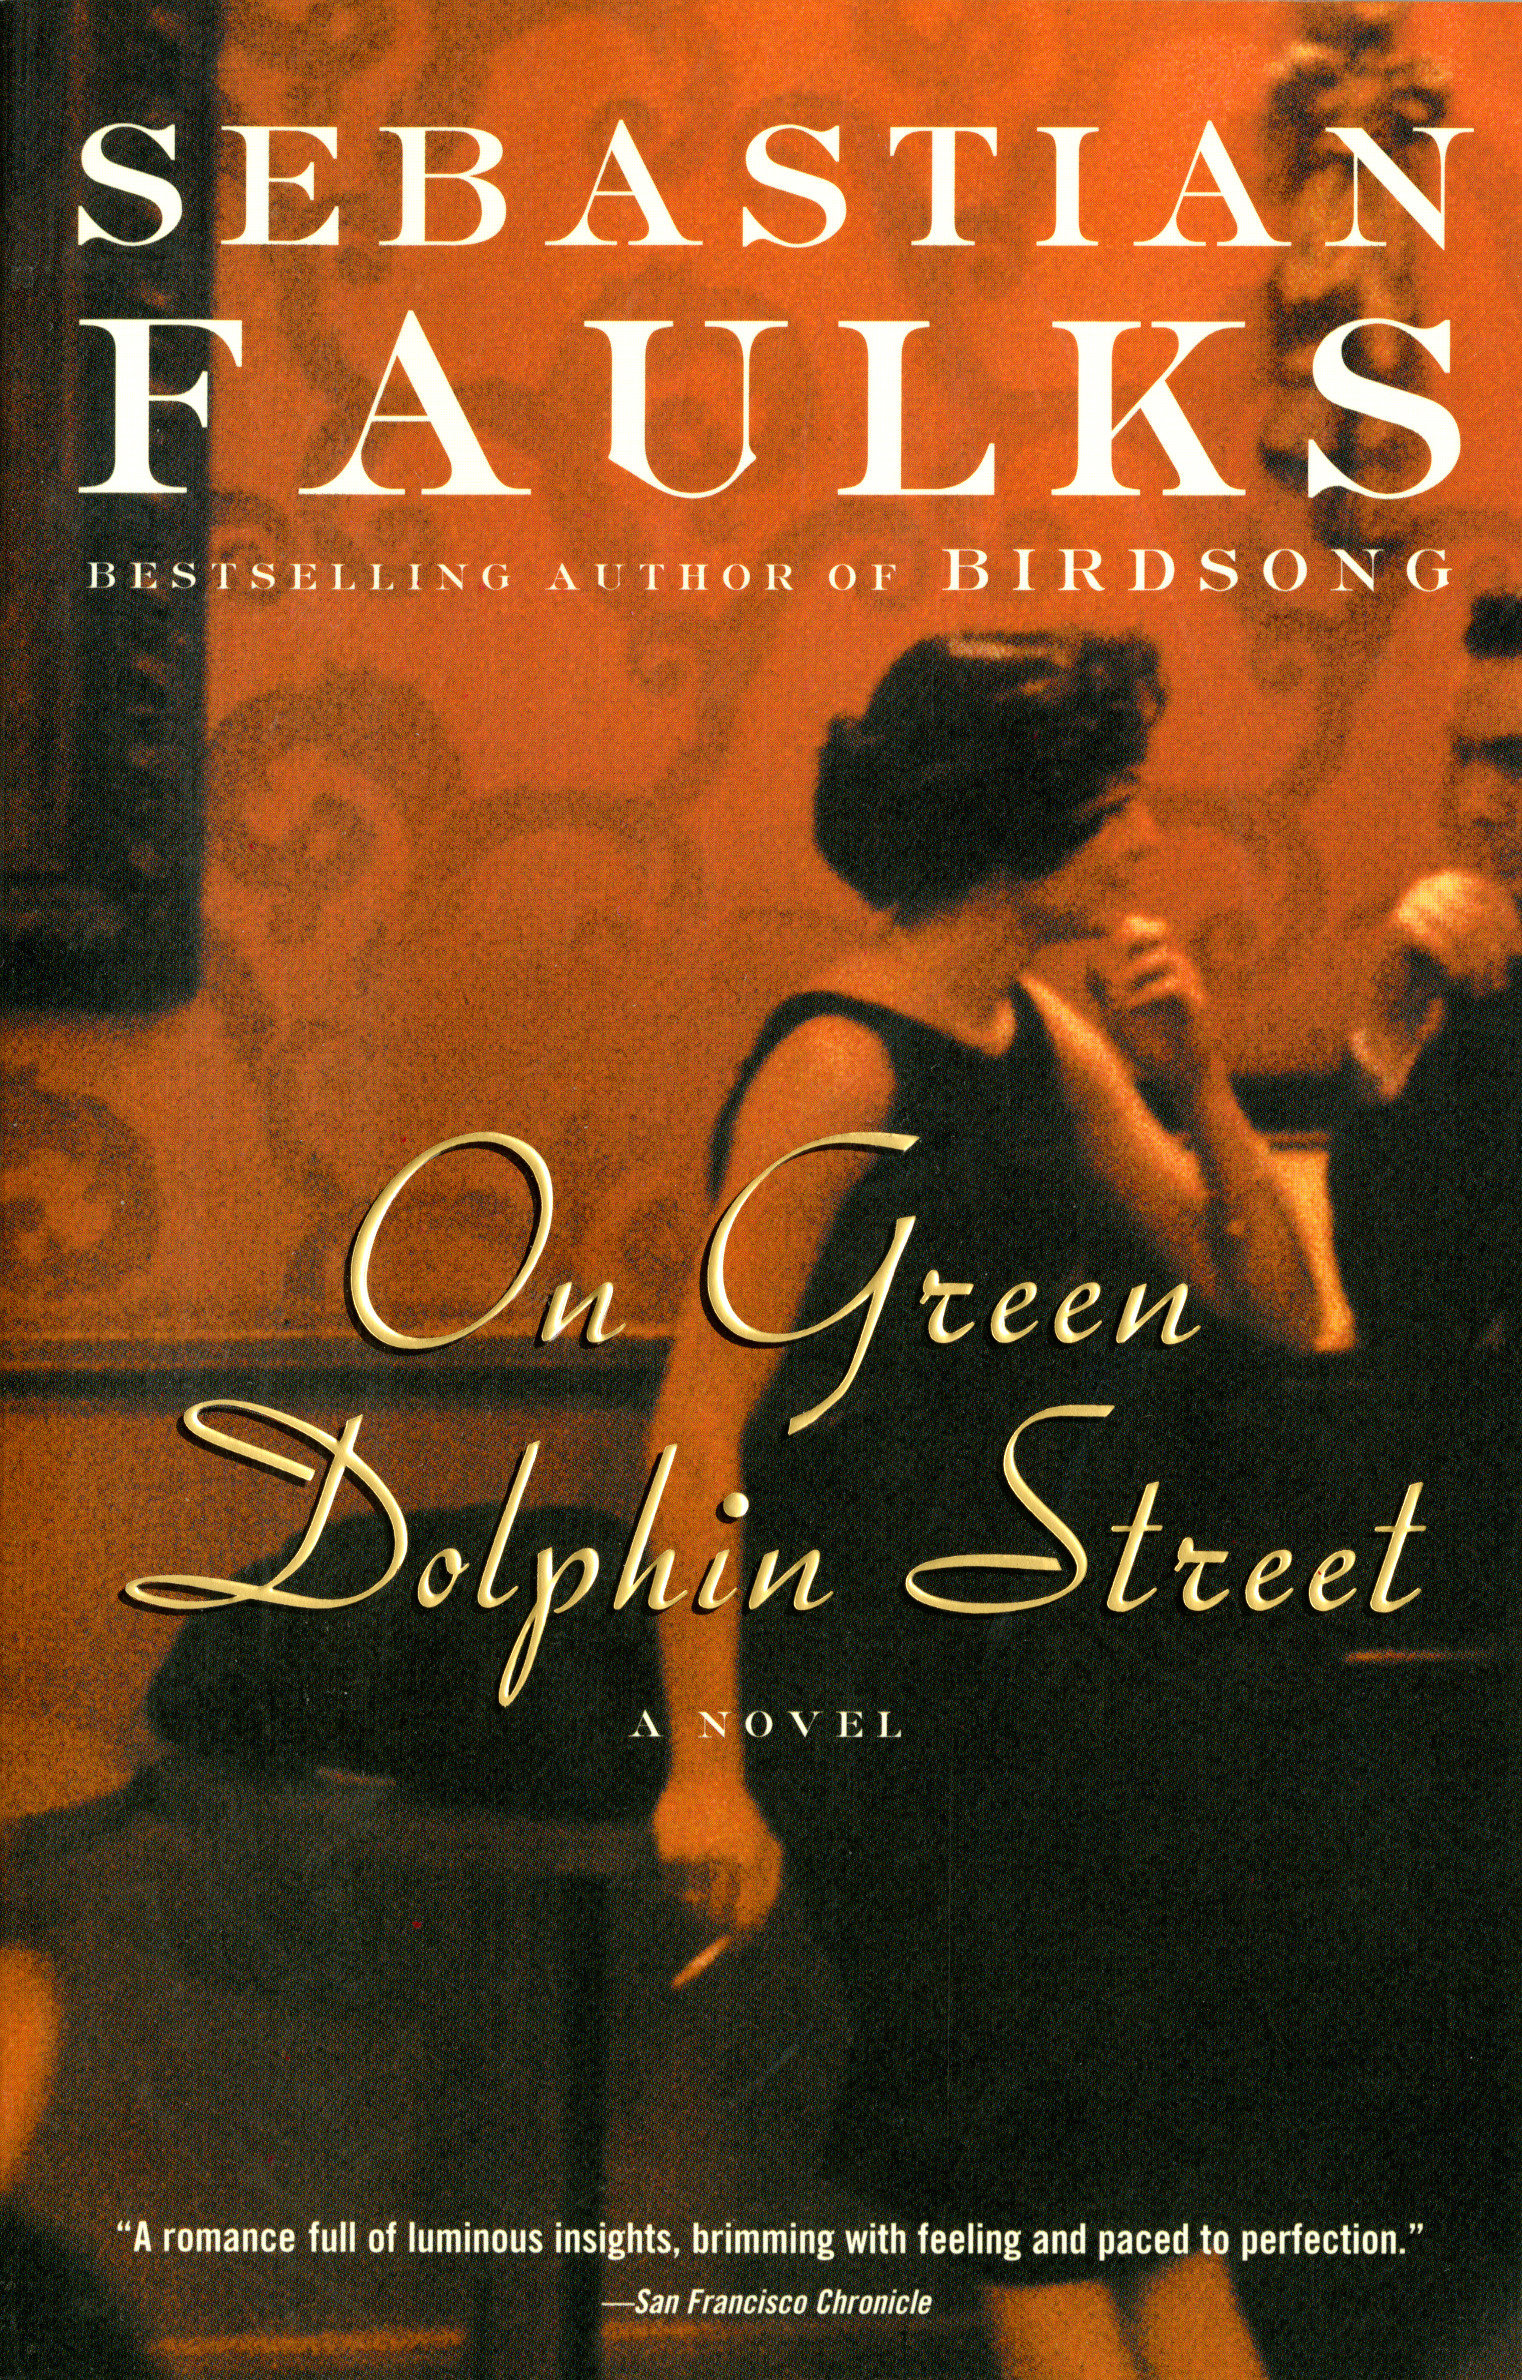 On Green Dolphin Street cover image